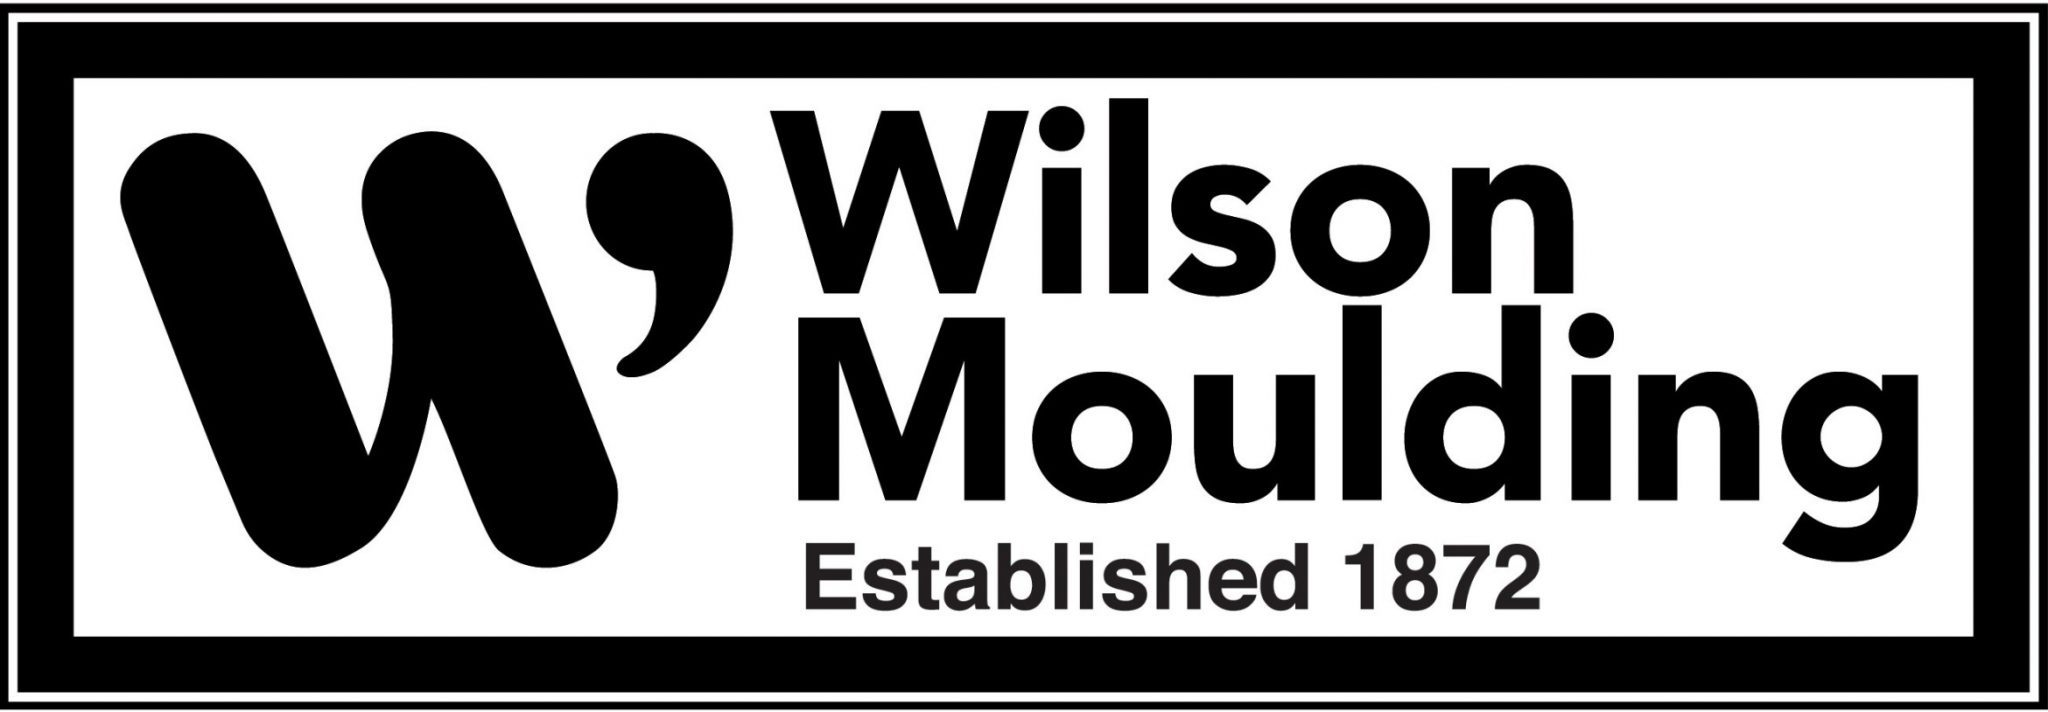 Wilson Moulding | Picture Frame Moulding, Acrylic Box Manufacturer & Supplier in US